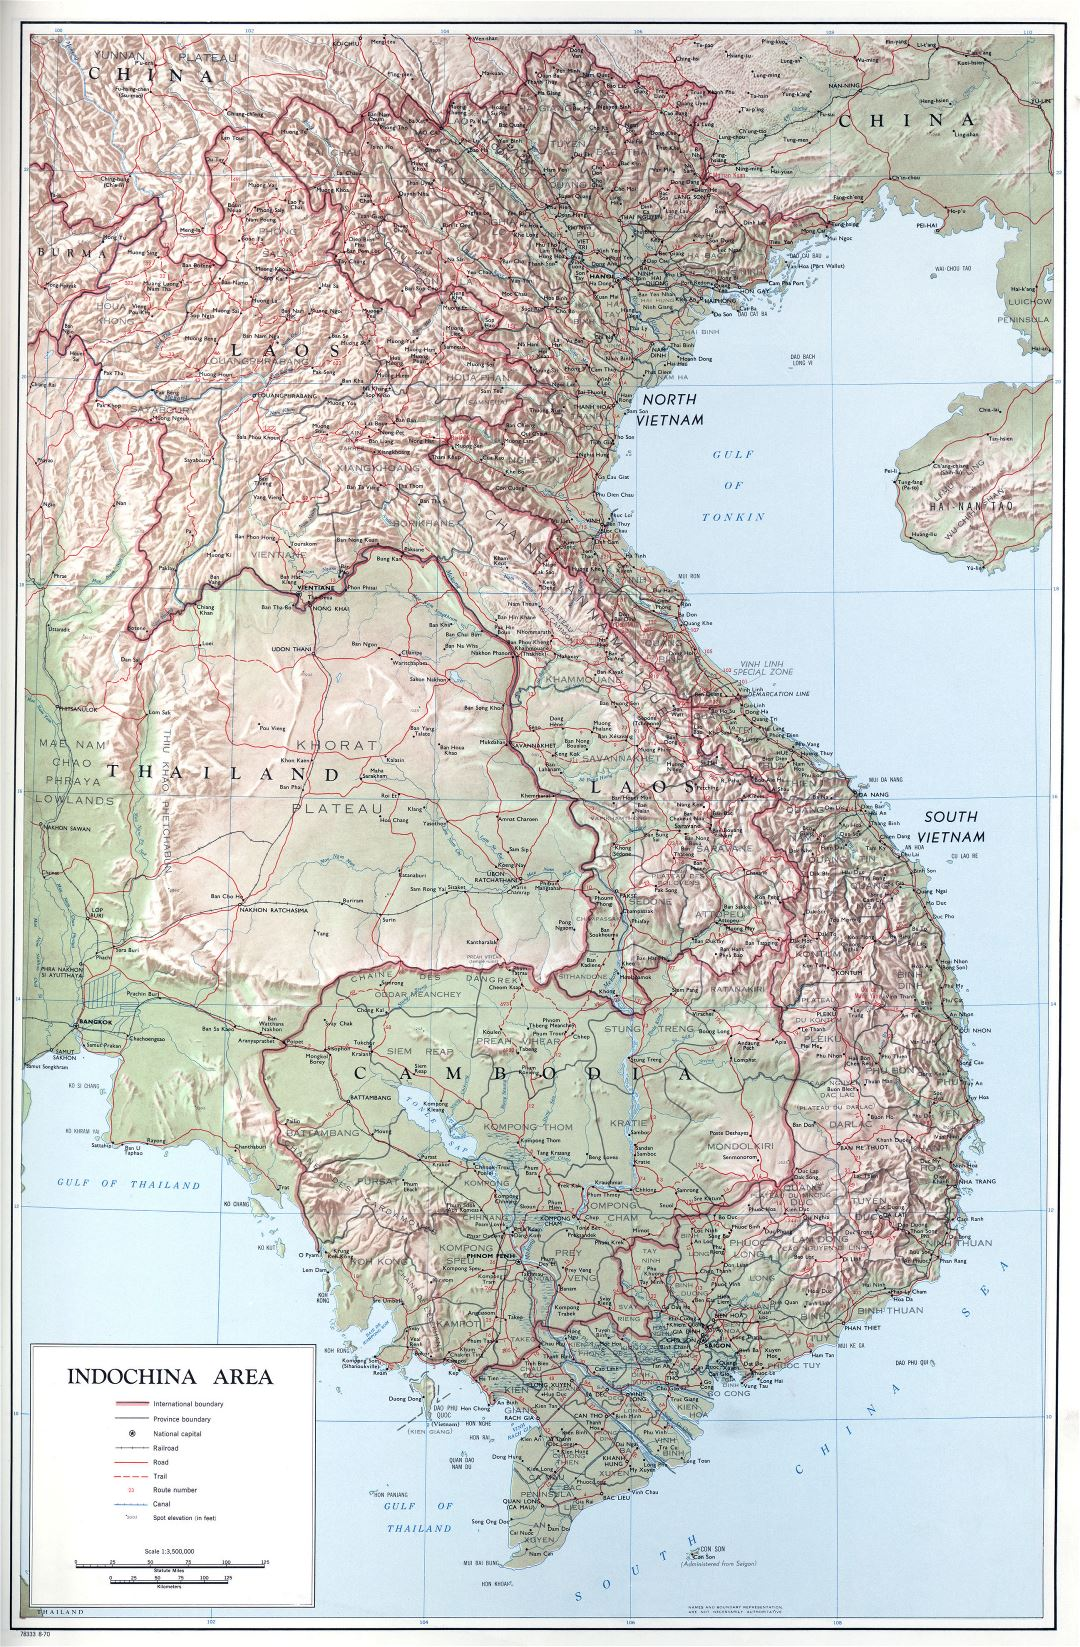 Large scale political map of Indochina with relief, roads and cities - 1970